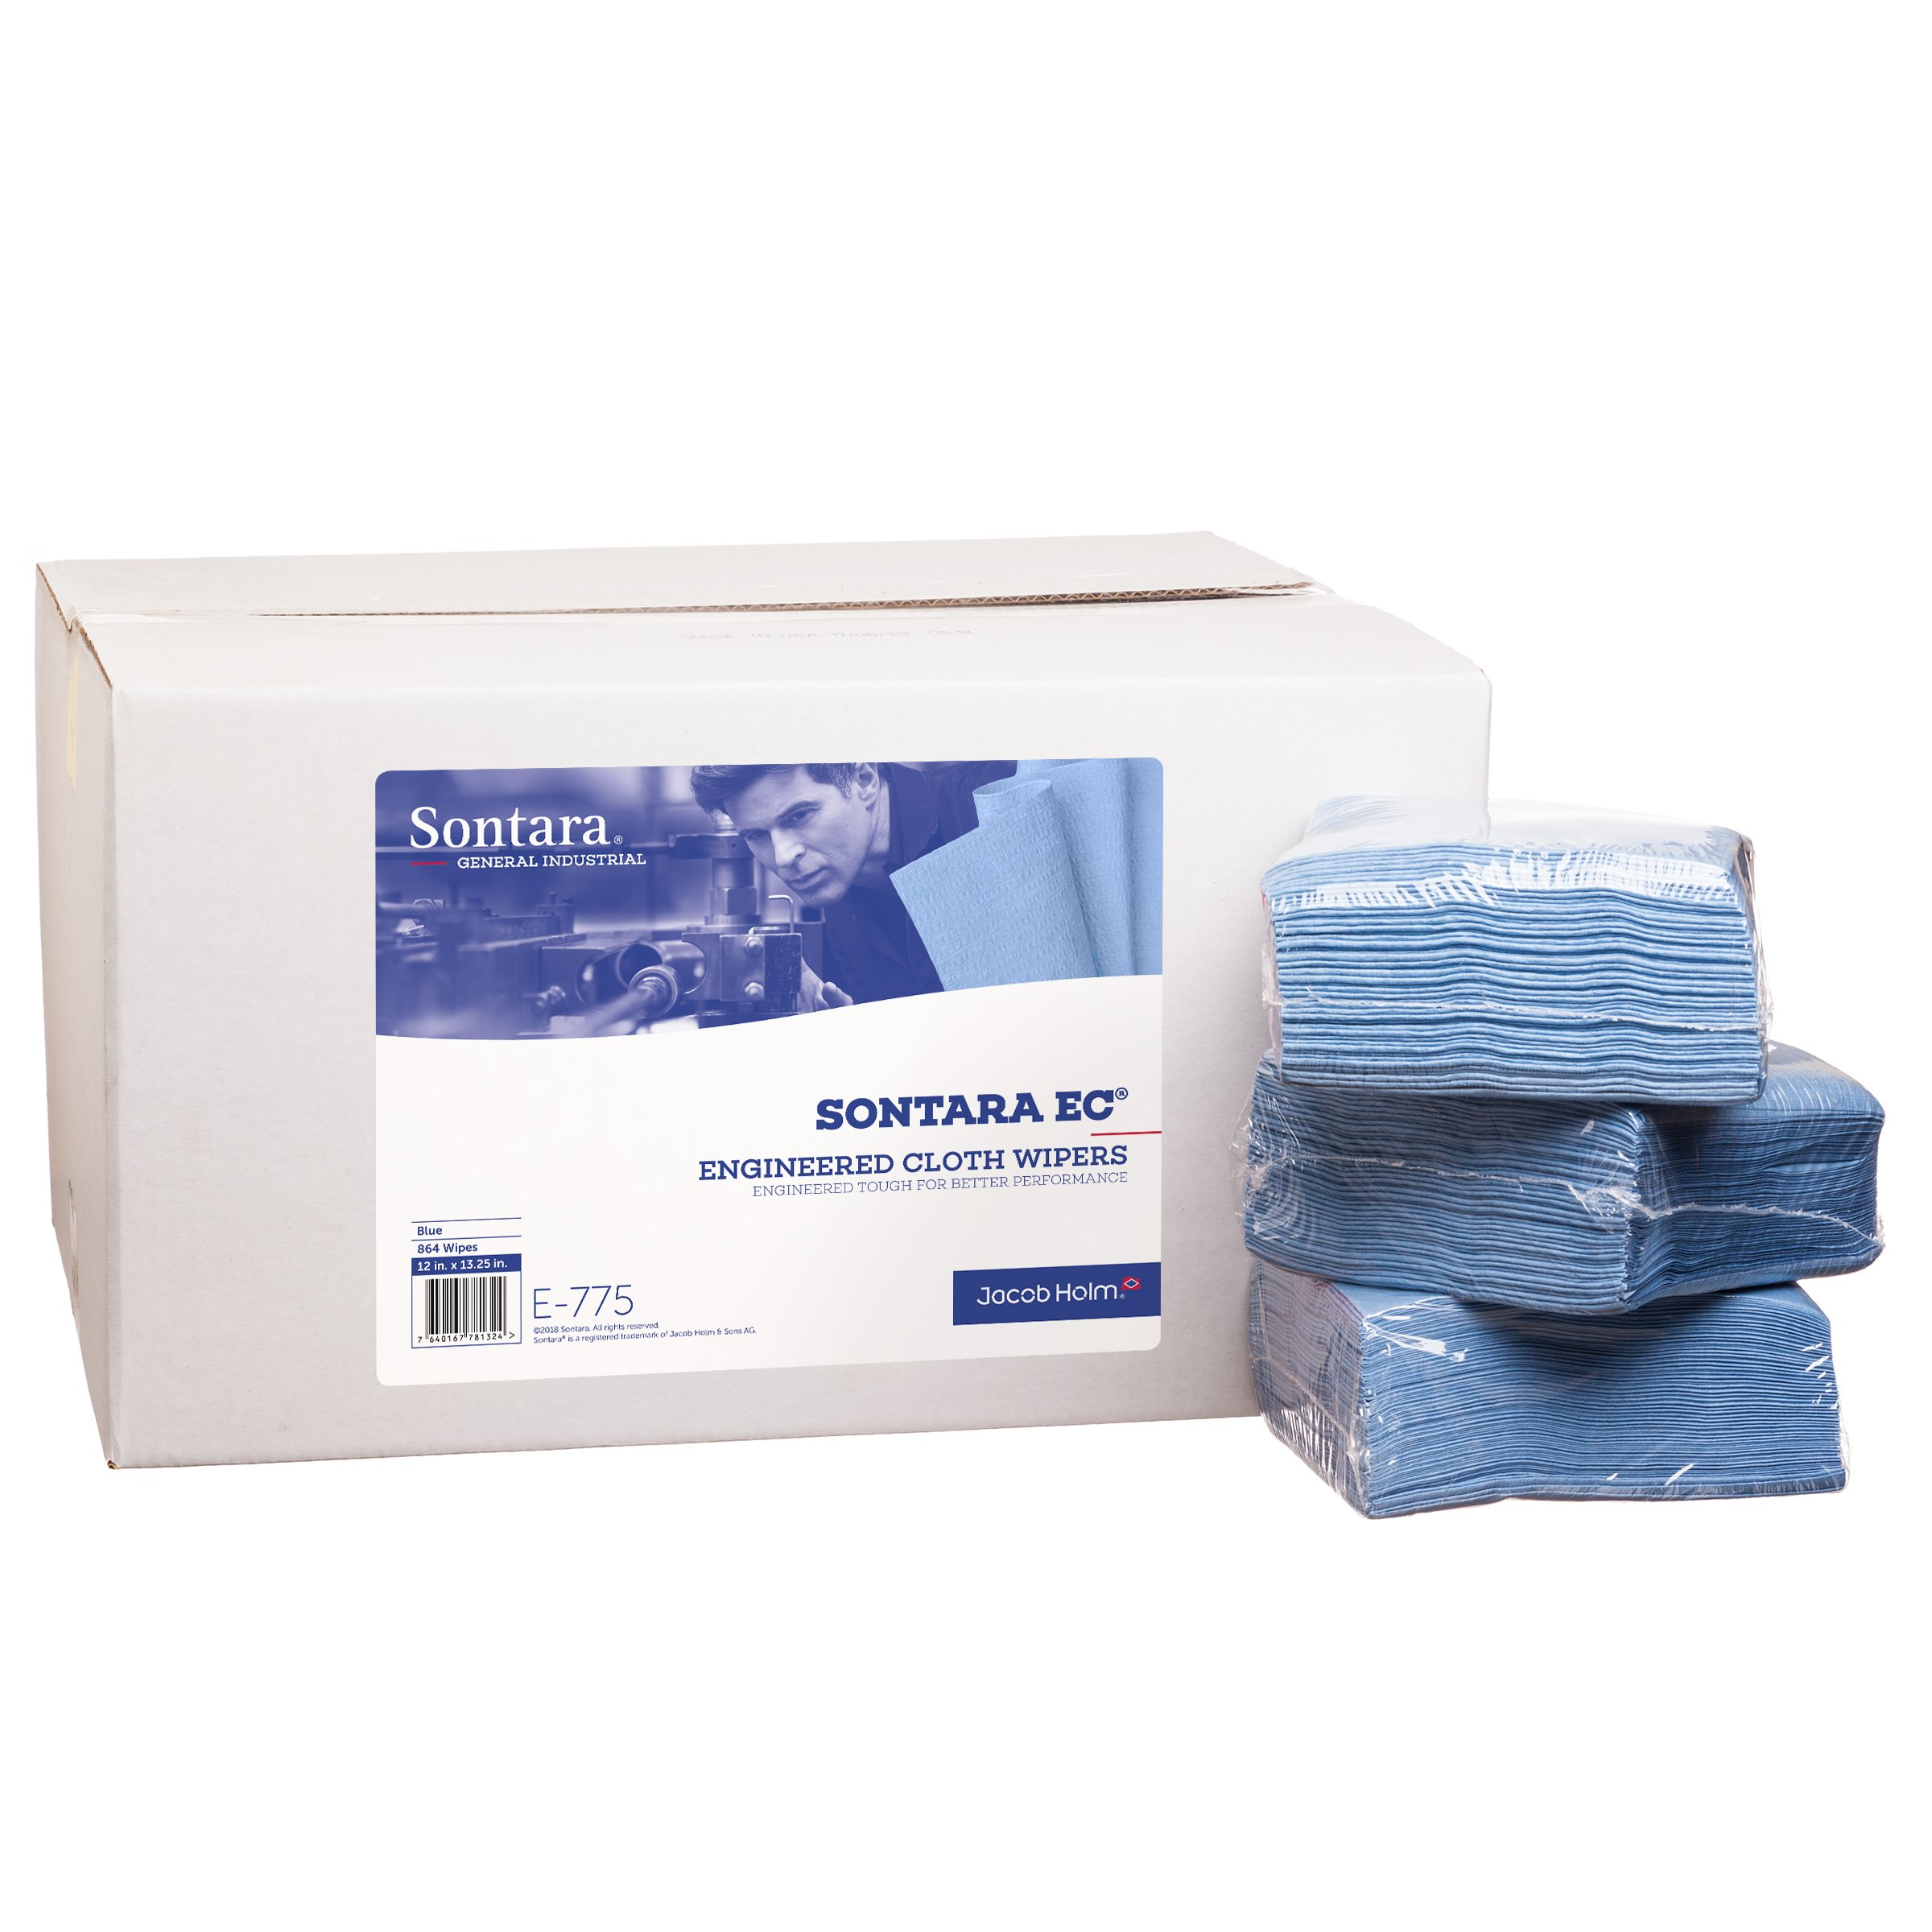 Sontara Engineered Cloth Wipers, E775, Blue, 12'' x 13.25'', (Total of 864 Wipes), (Case of 18 Packs, 48 Wipes Per Pack) by Sontara (Image #3)